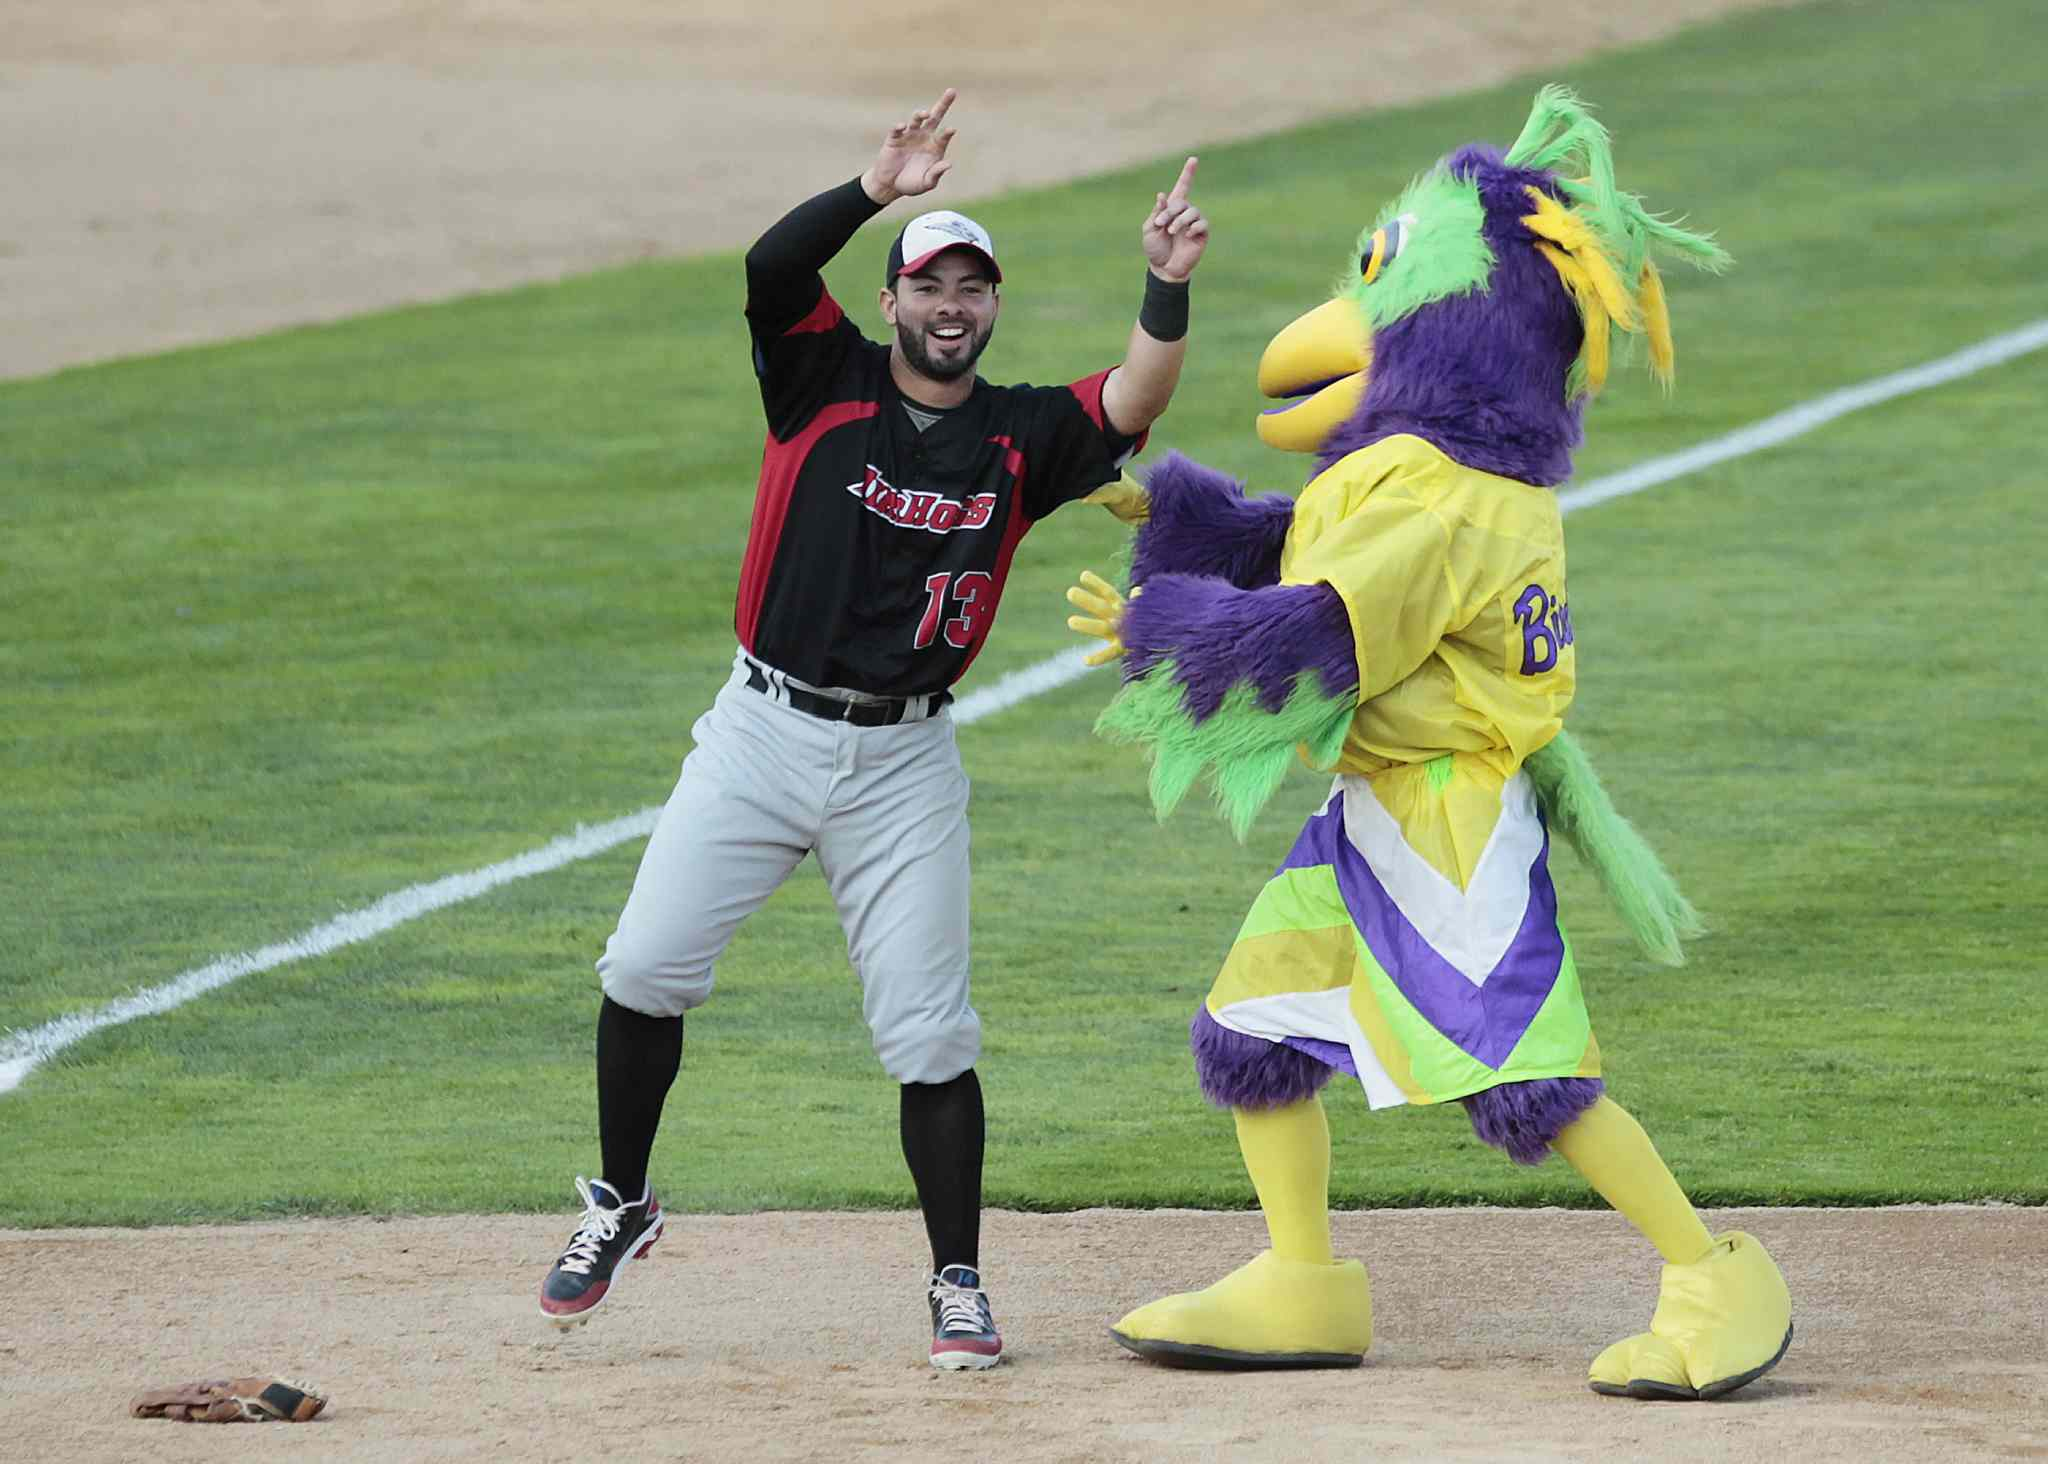 Grand Prairie Air Hogs Adel Nieves jokes around with a mascot during Tuesday's All-Star game.